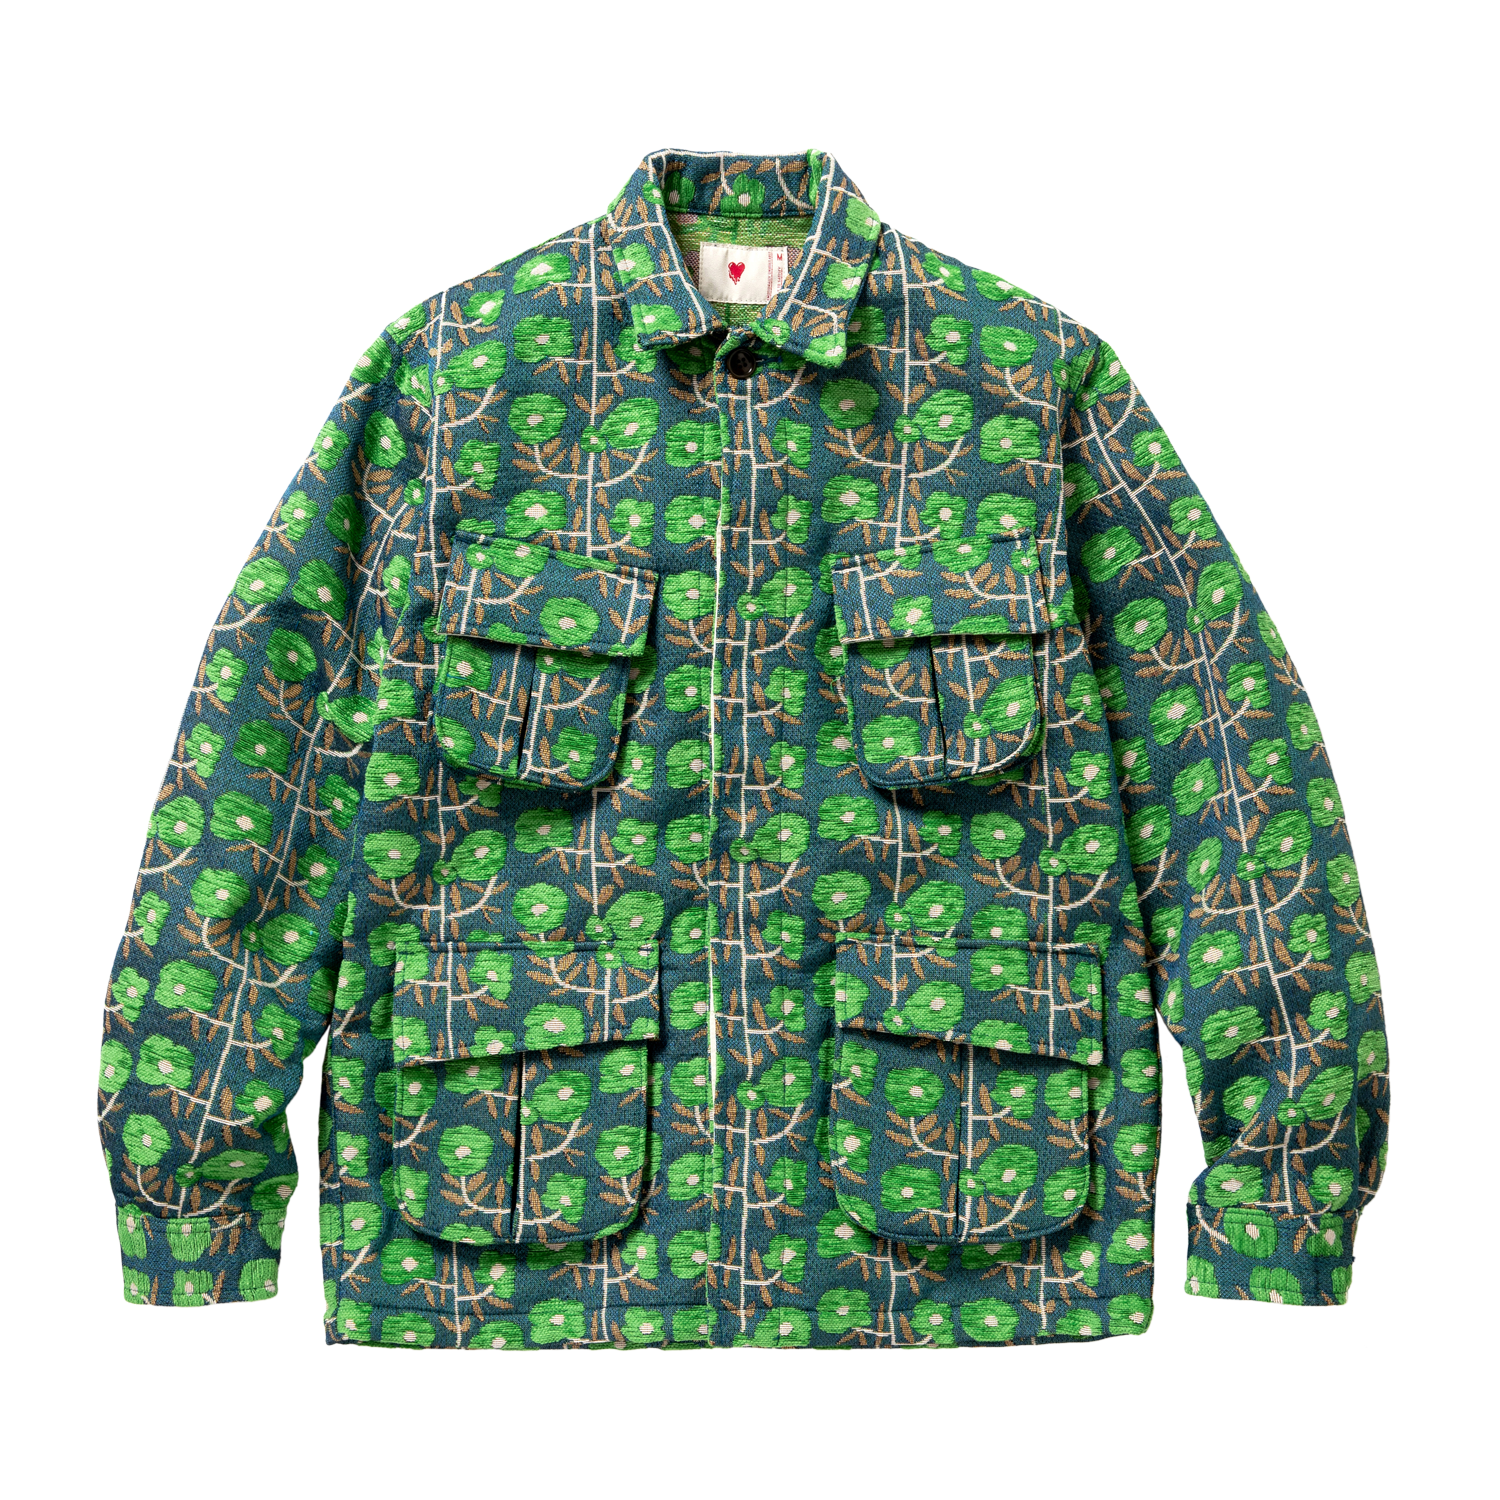 Field Jacket - Gobelin, Green